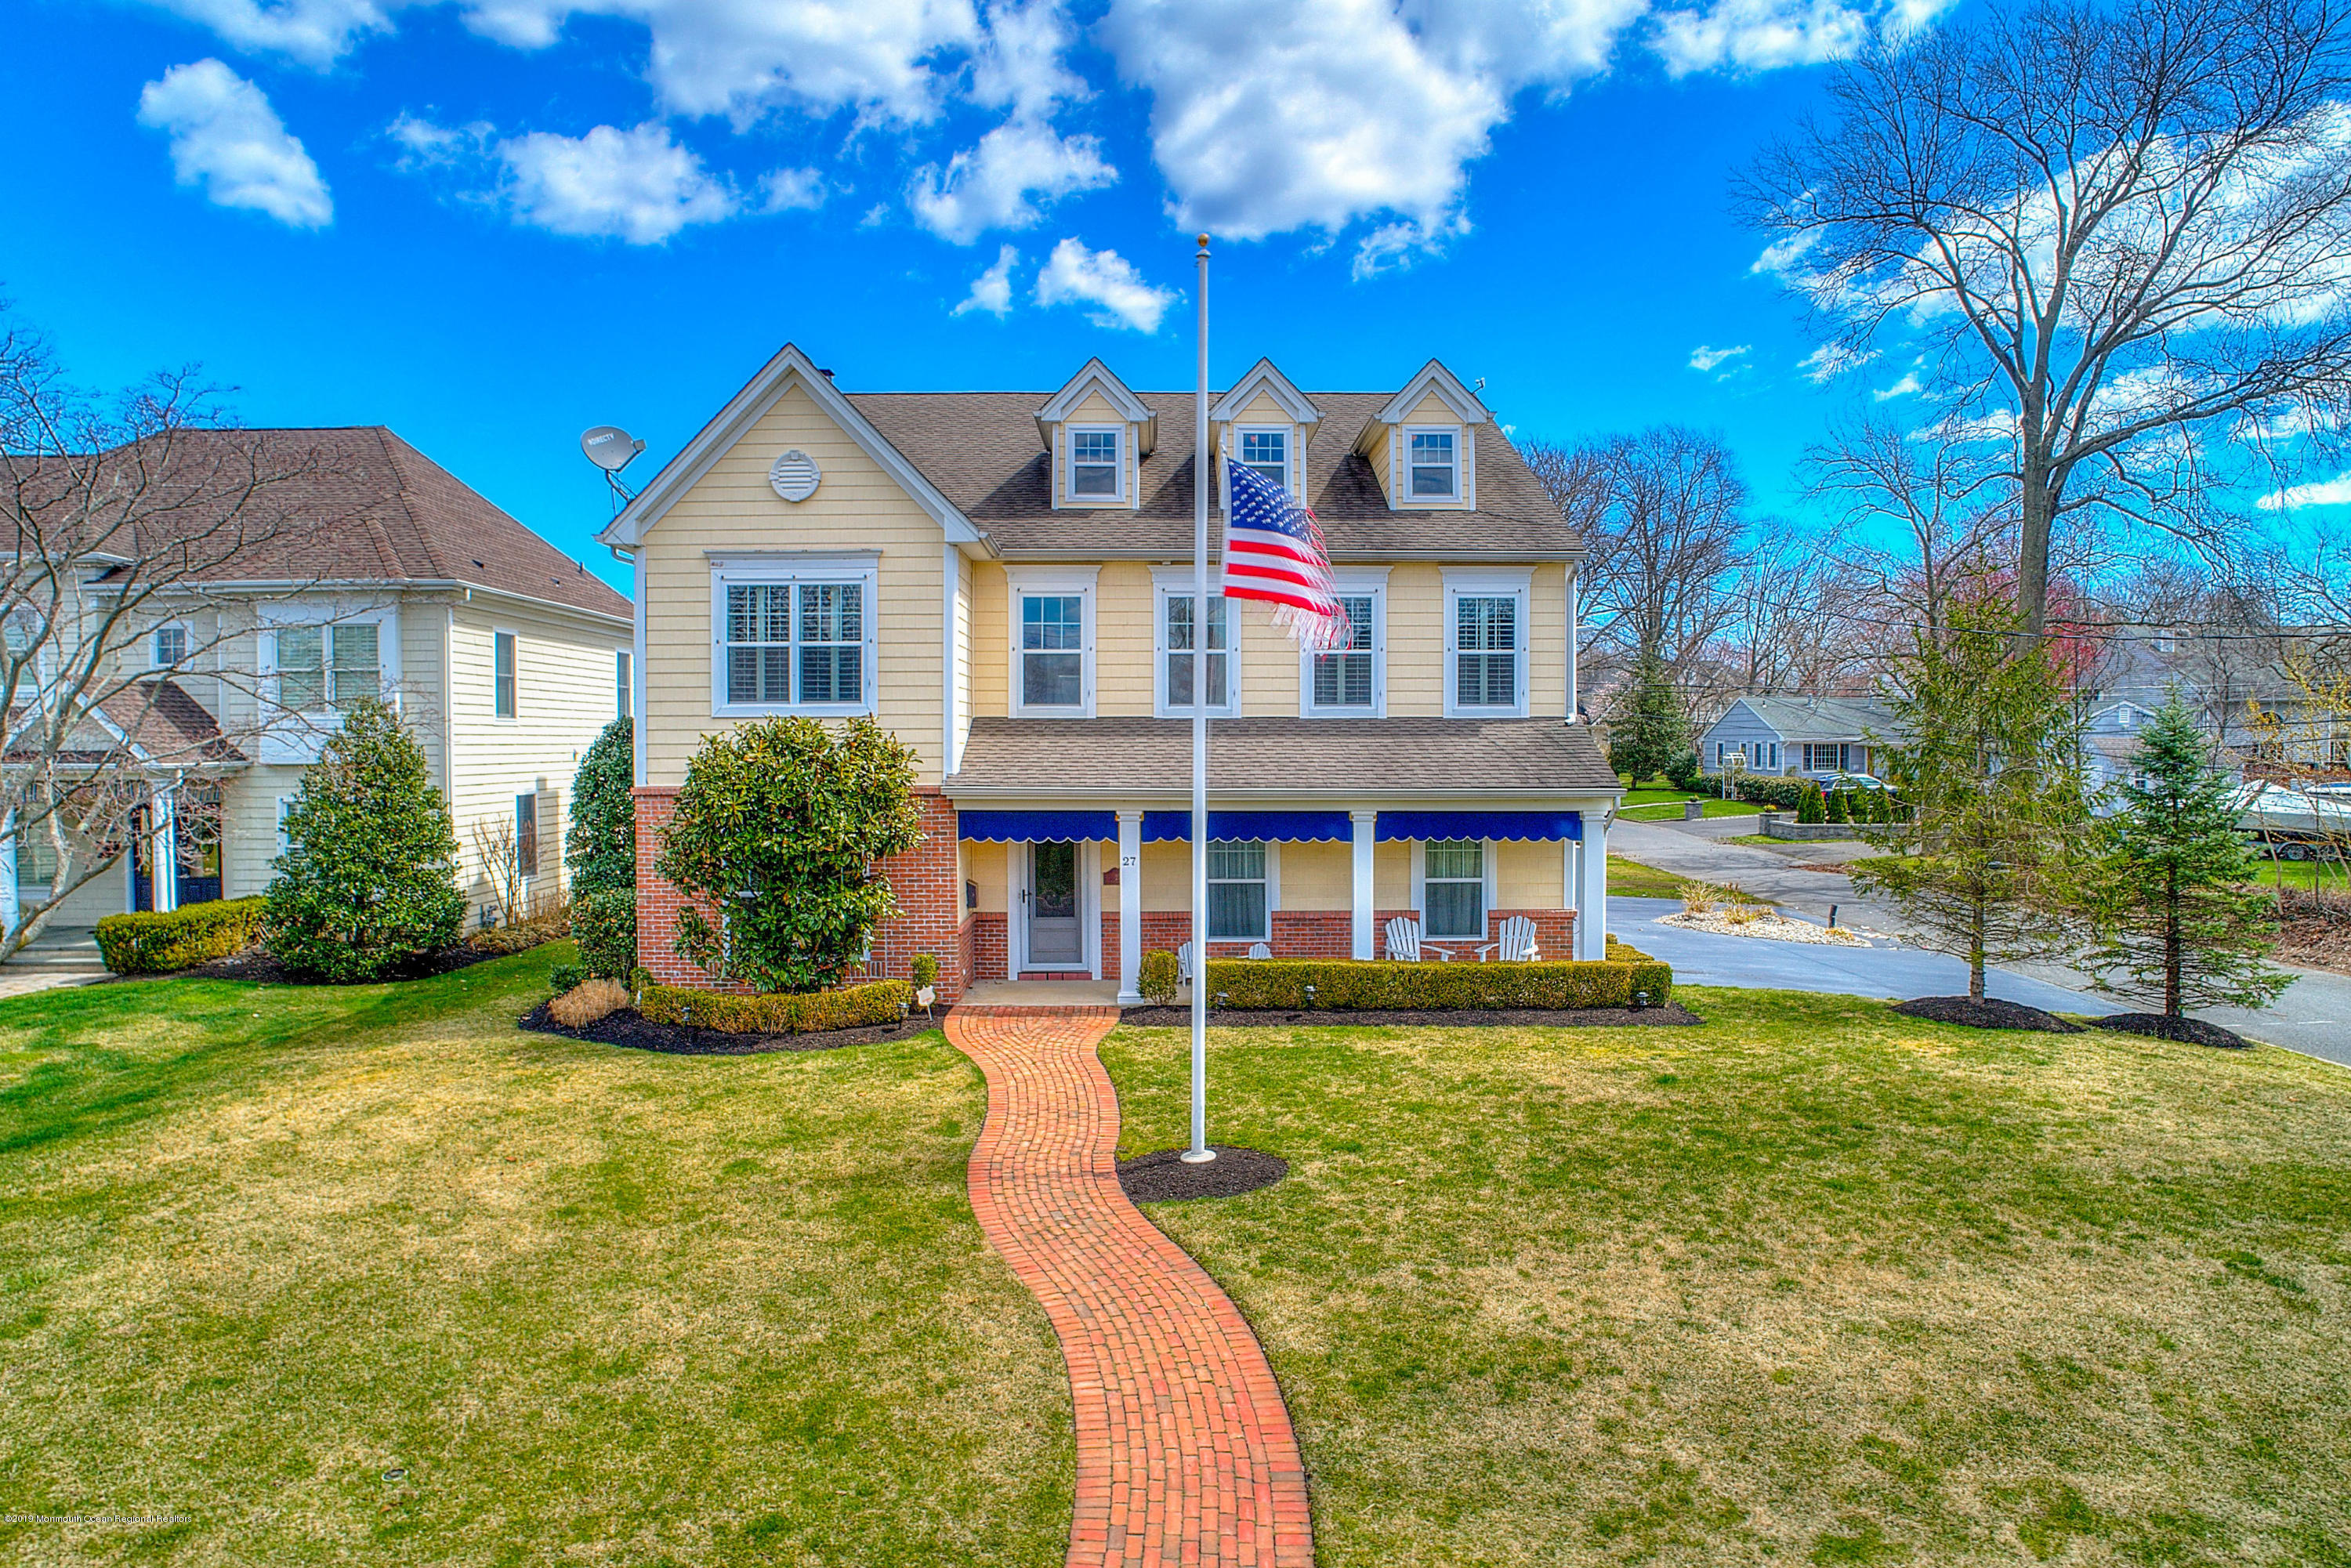 Photo of 27 Navesink Drive, Monmouth Beach, NJ 07750